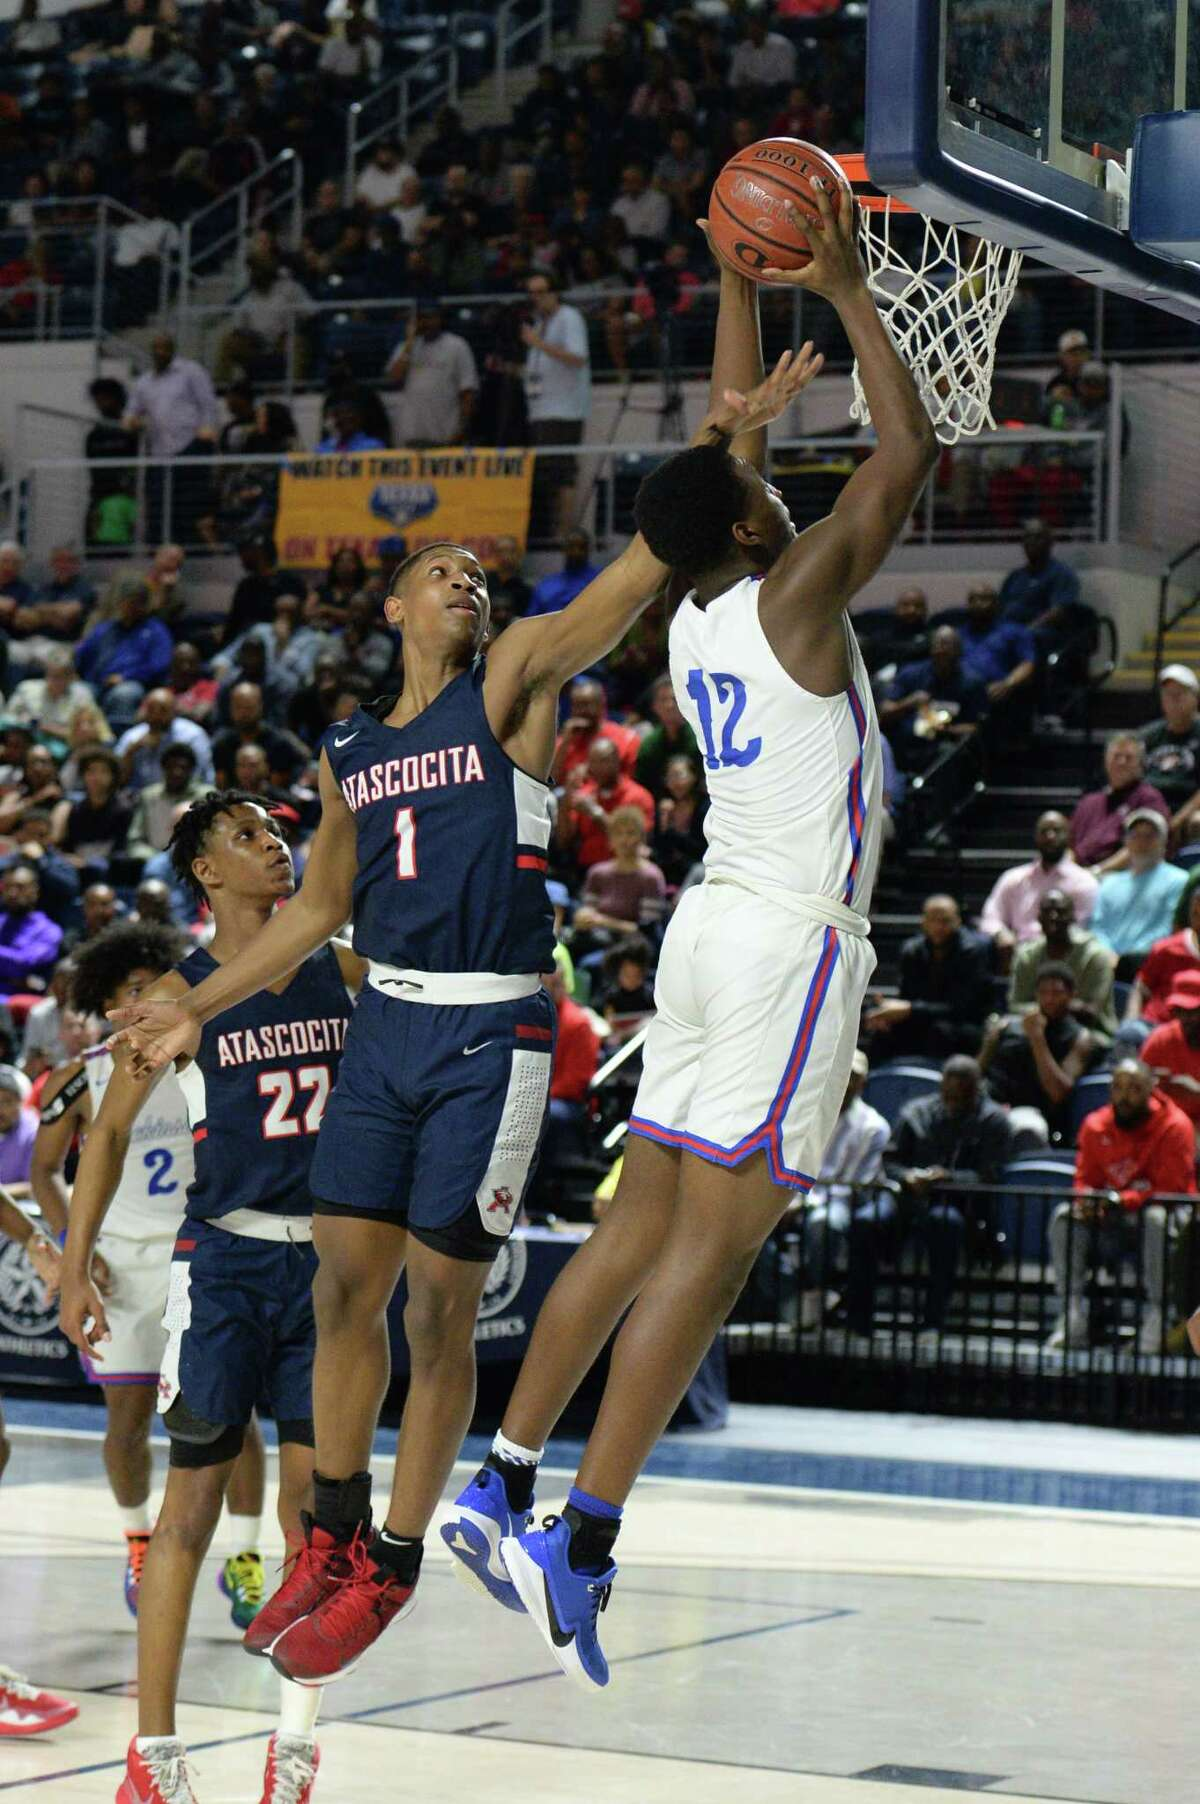 Donovan Green (12) of Dickinson makes a slam dunks past Kaleb Stewart (1) of Atascocita during the fourth quarter of the Boys 6A Region III Quarterfinal basketball game between the Dickinson Gators and the Atascocita Eagles on Tuesday, March 3, 2020 at Delmar Fieldhouse, Houston, TX.